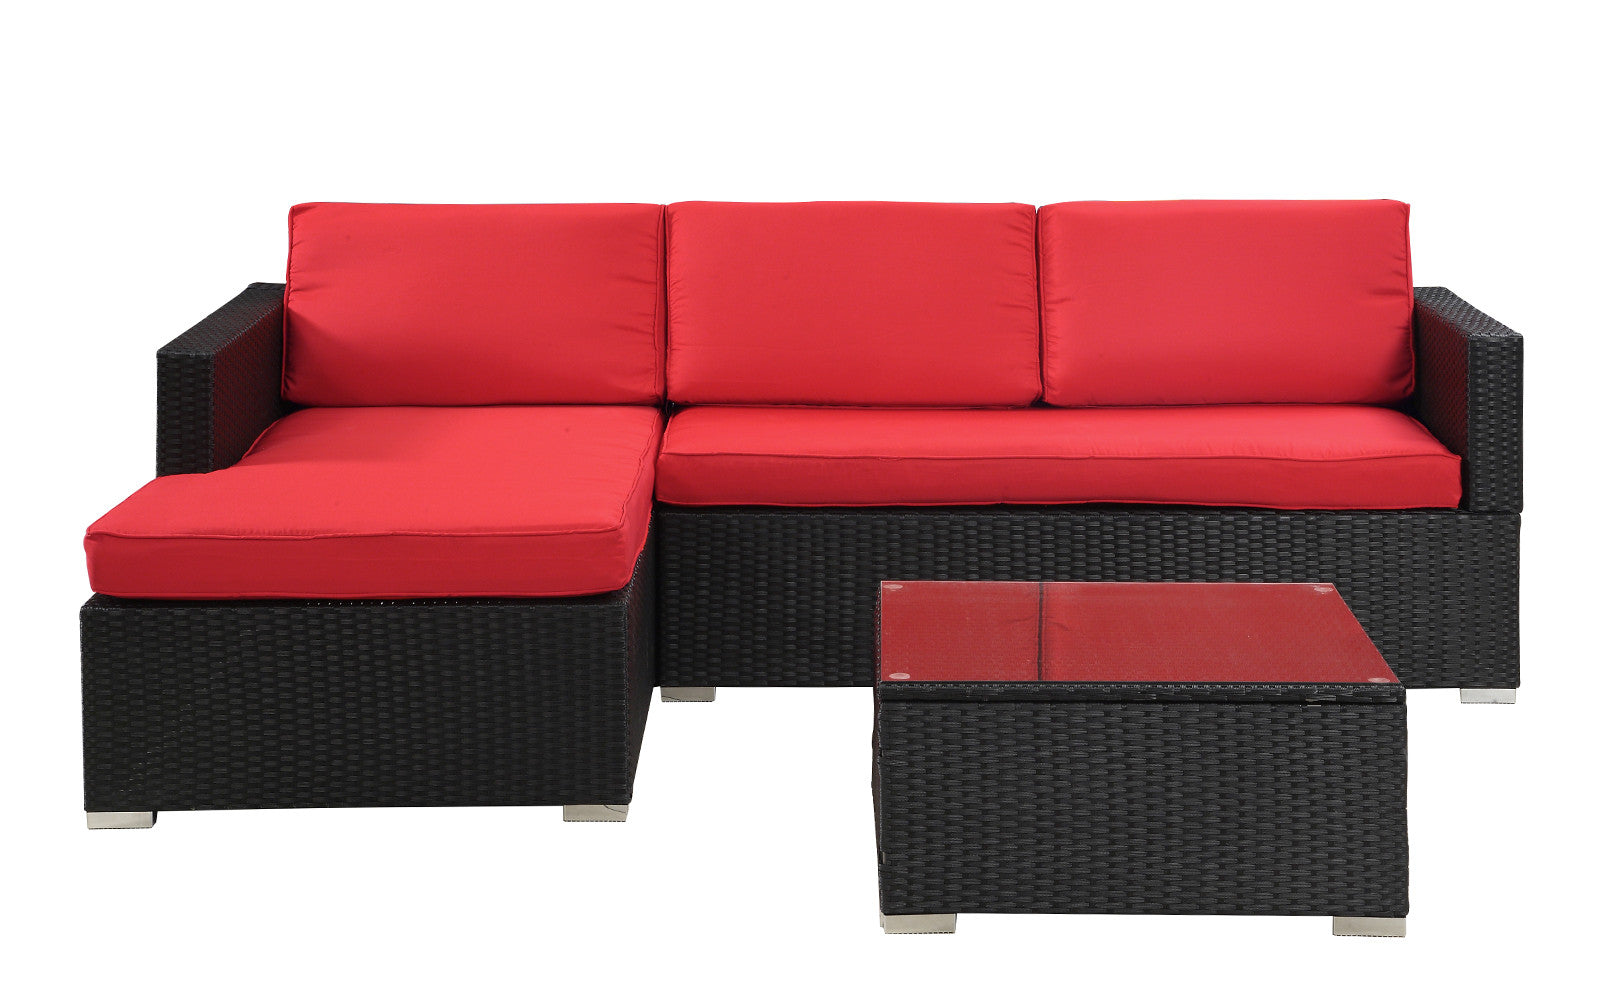 Hilo Modern Outdoor Sectional with Coffee Table | Sofamania.com